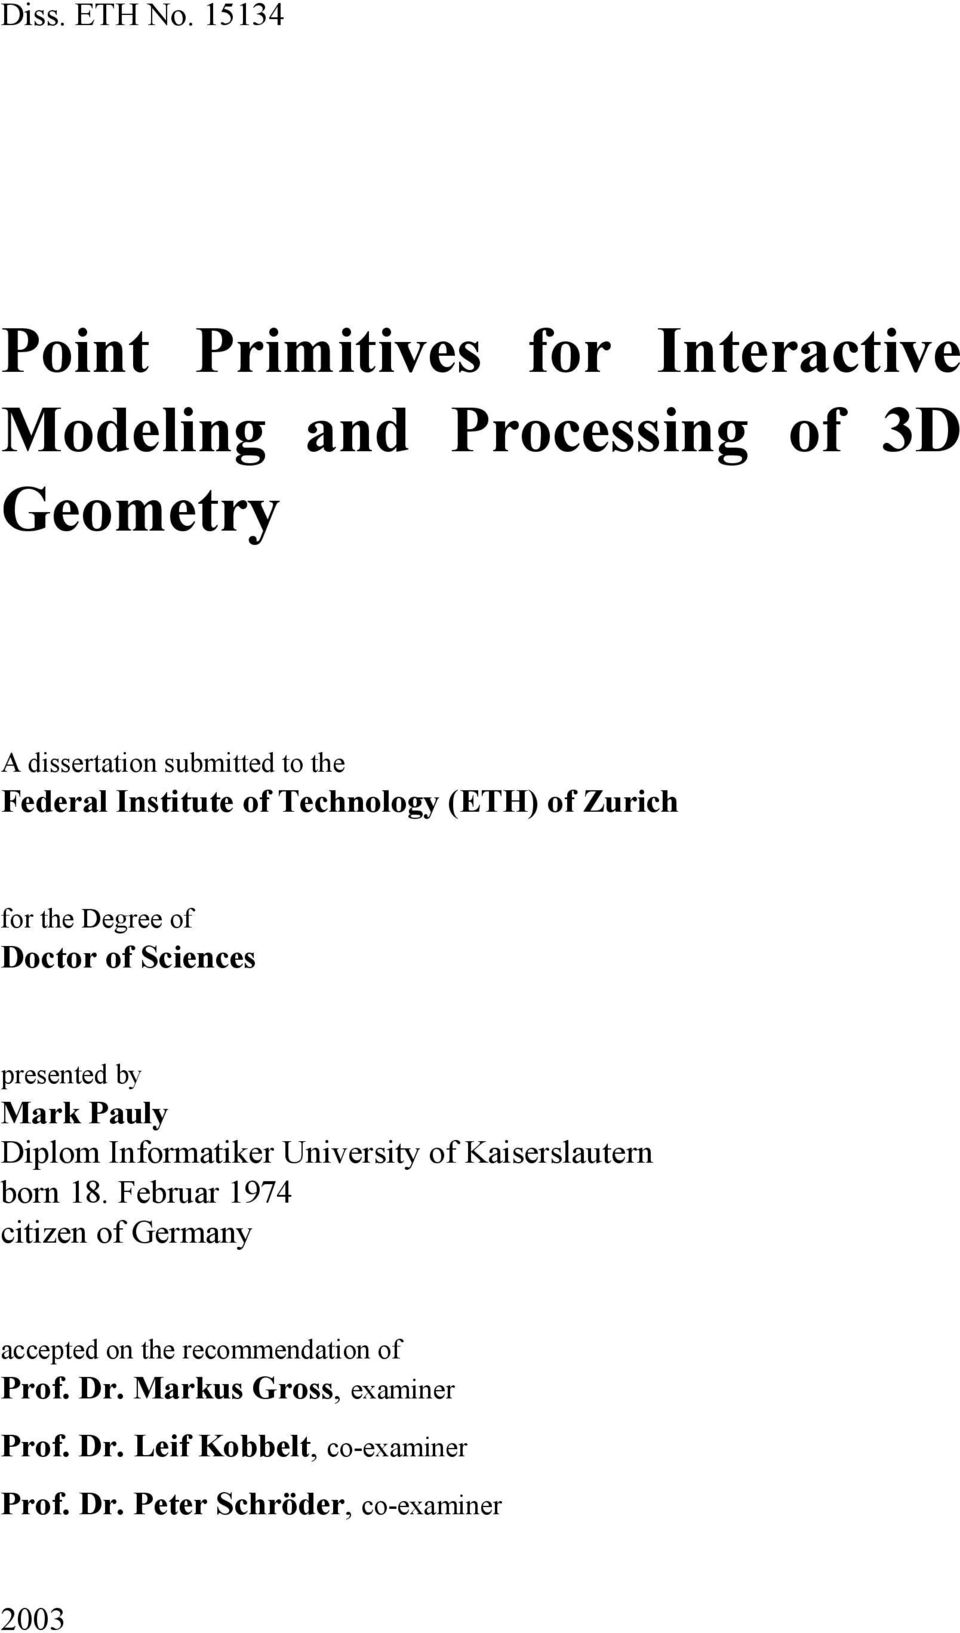 Federal Institute of Technology (ETH) of Zurich for the Degree of Doctor of Sciences presented by Mark Pauly Diplom